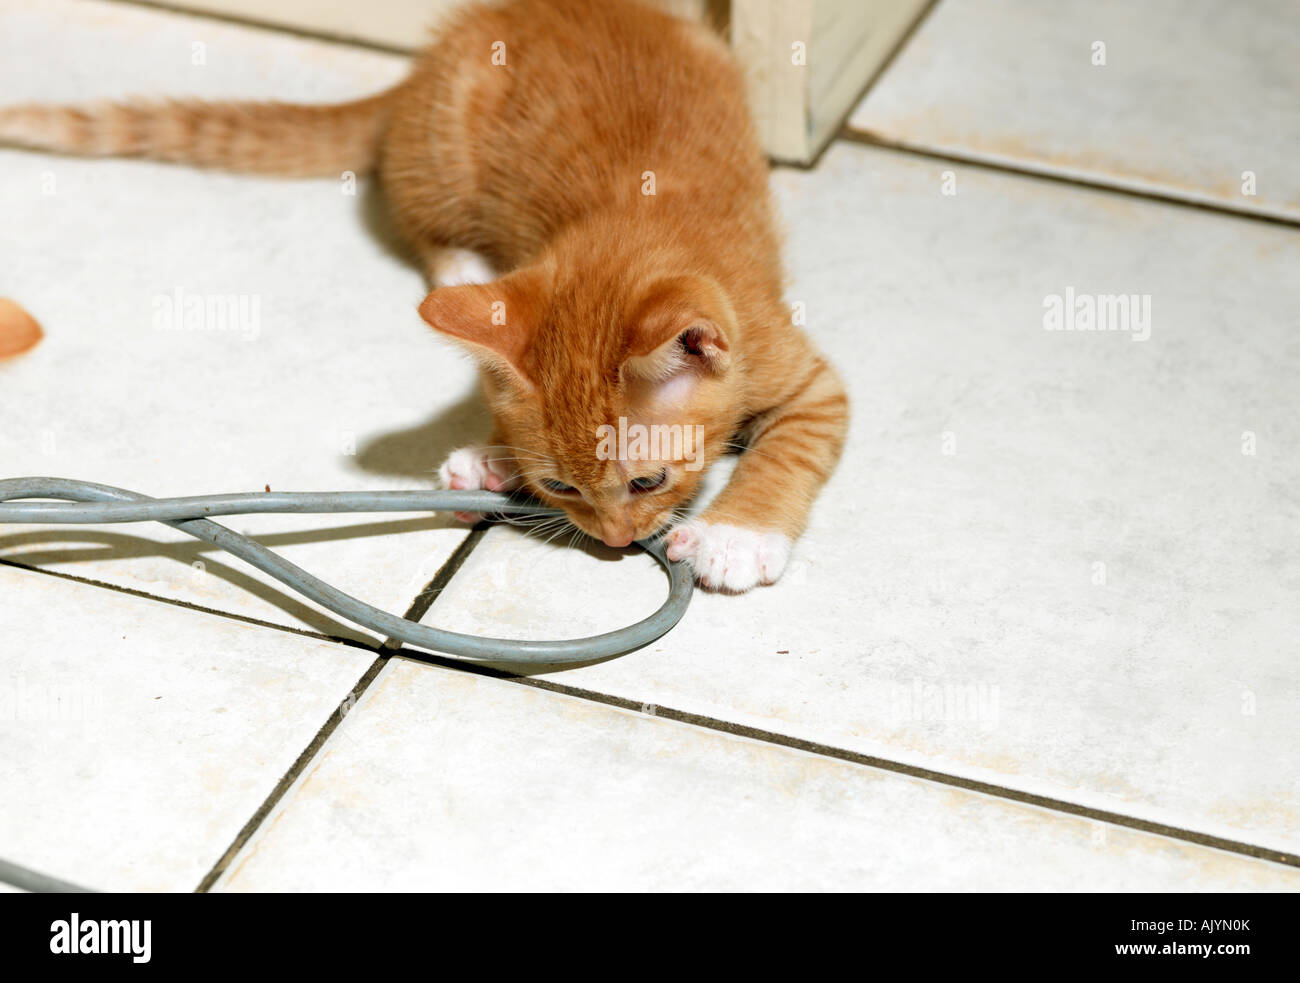 Kitten Biting and Electrical Wire Stock Photo: 14837202 - Alamy